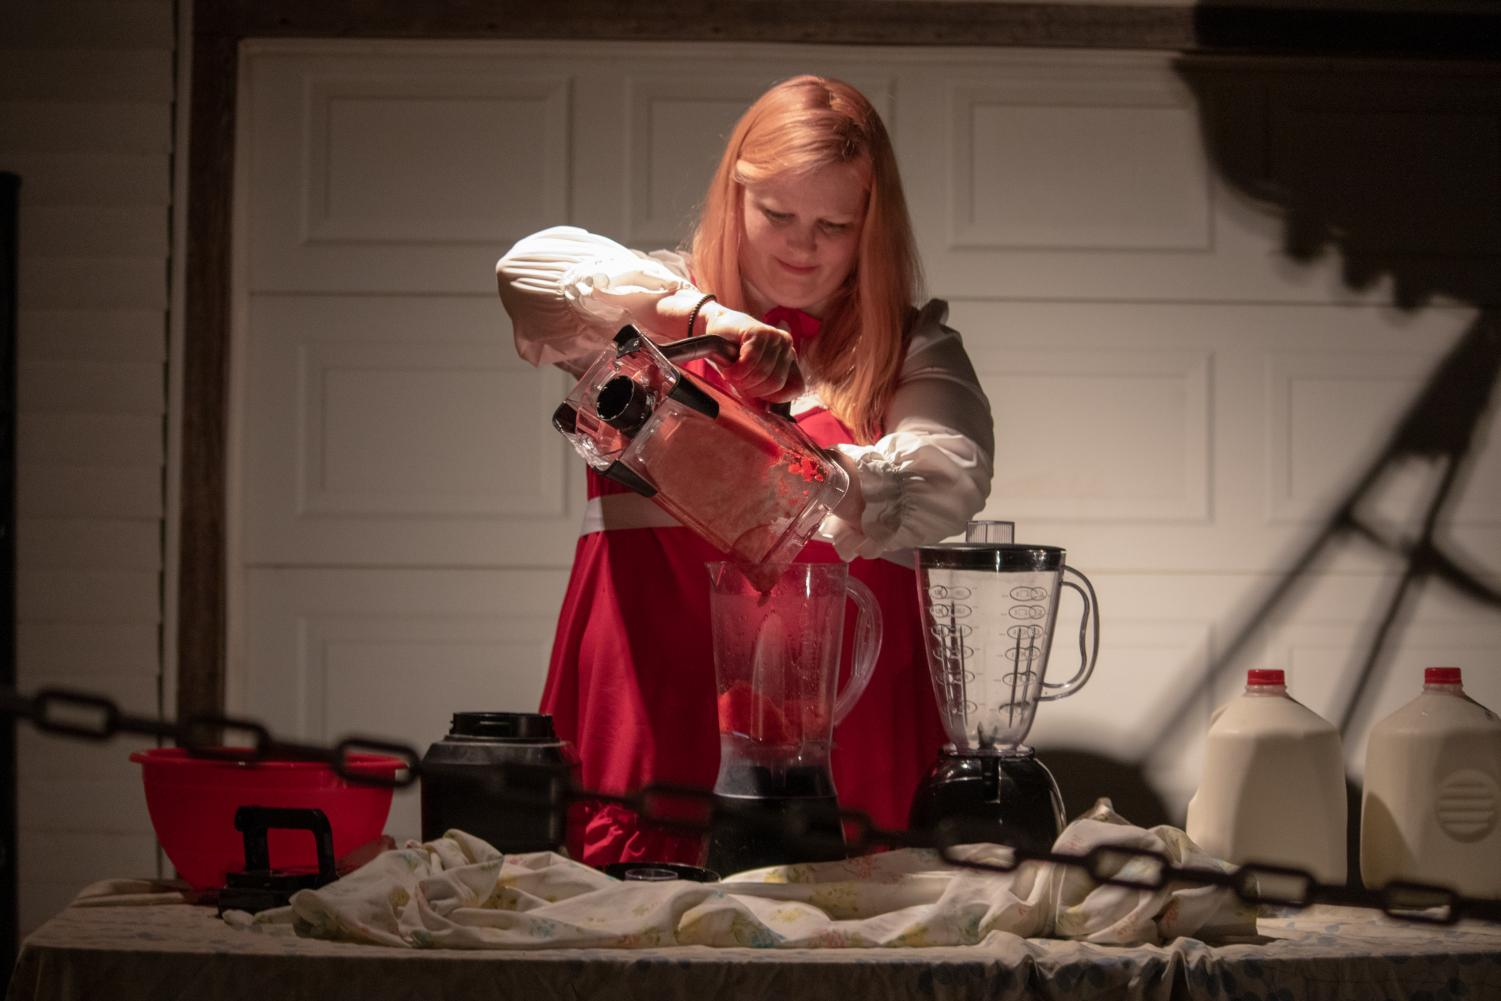 MFA Fine Arts Candidate Monika Maddux during her performance at the Monikahouse.